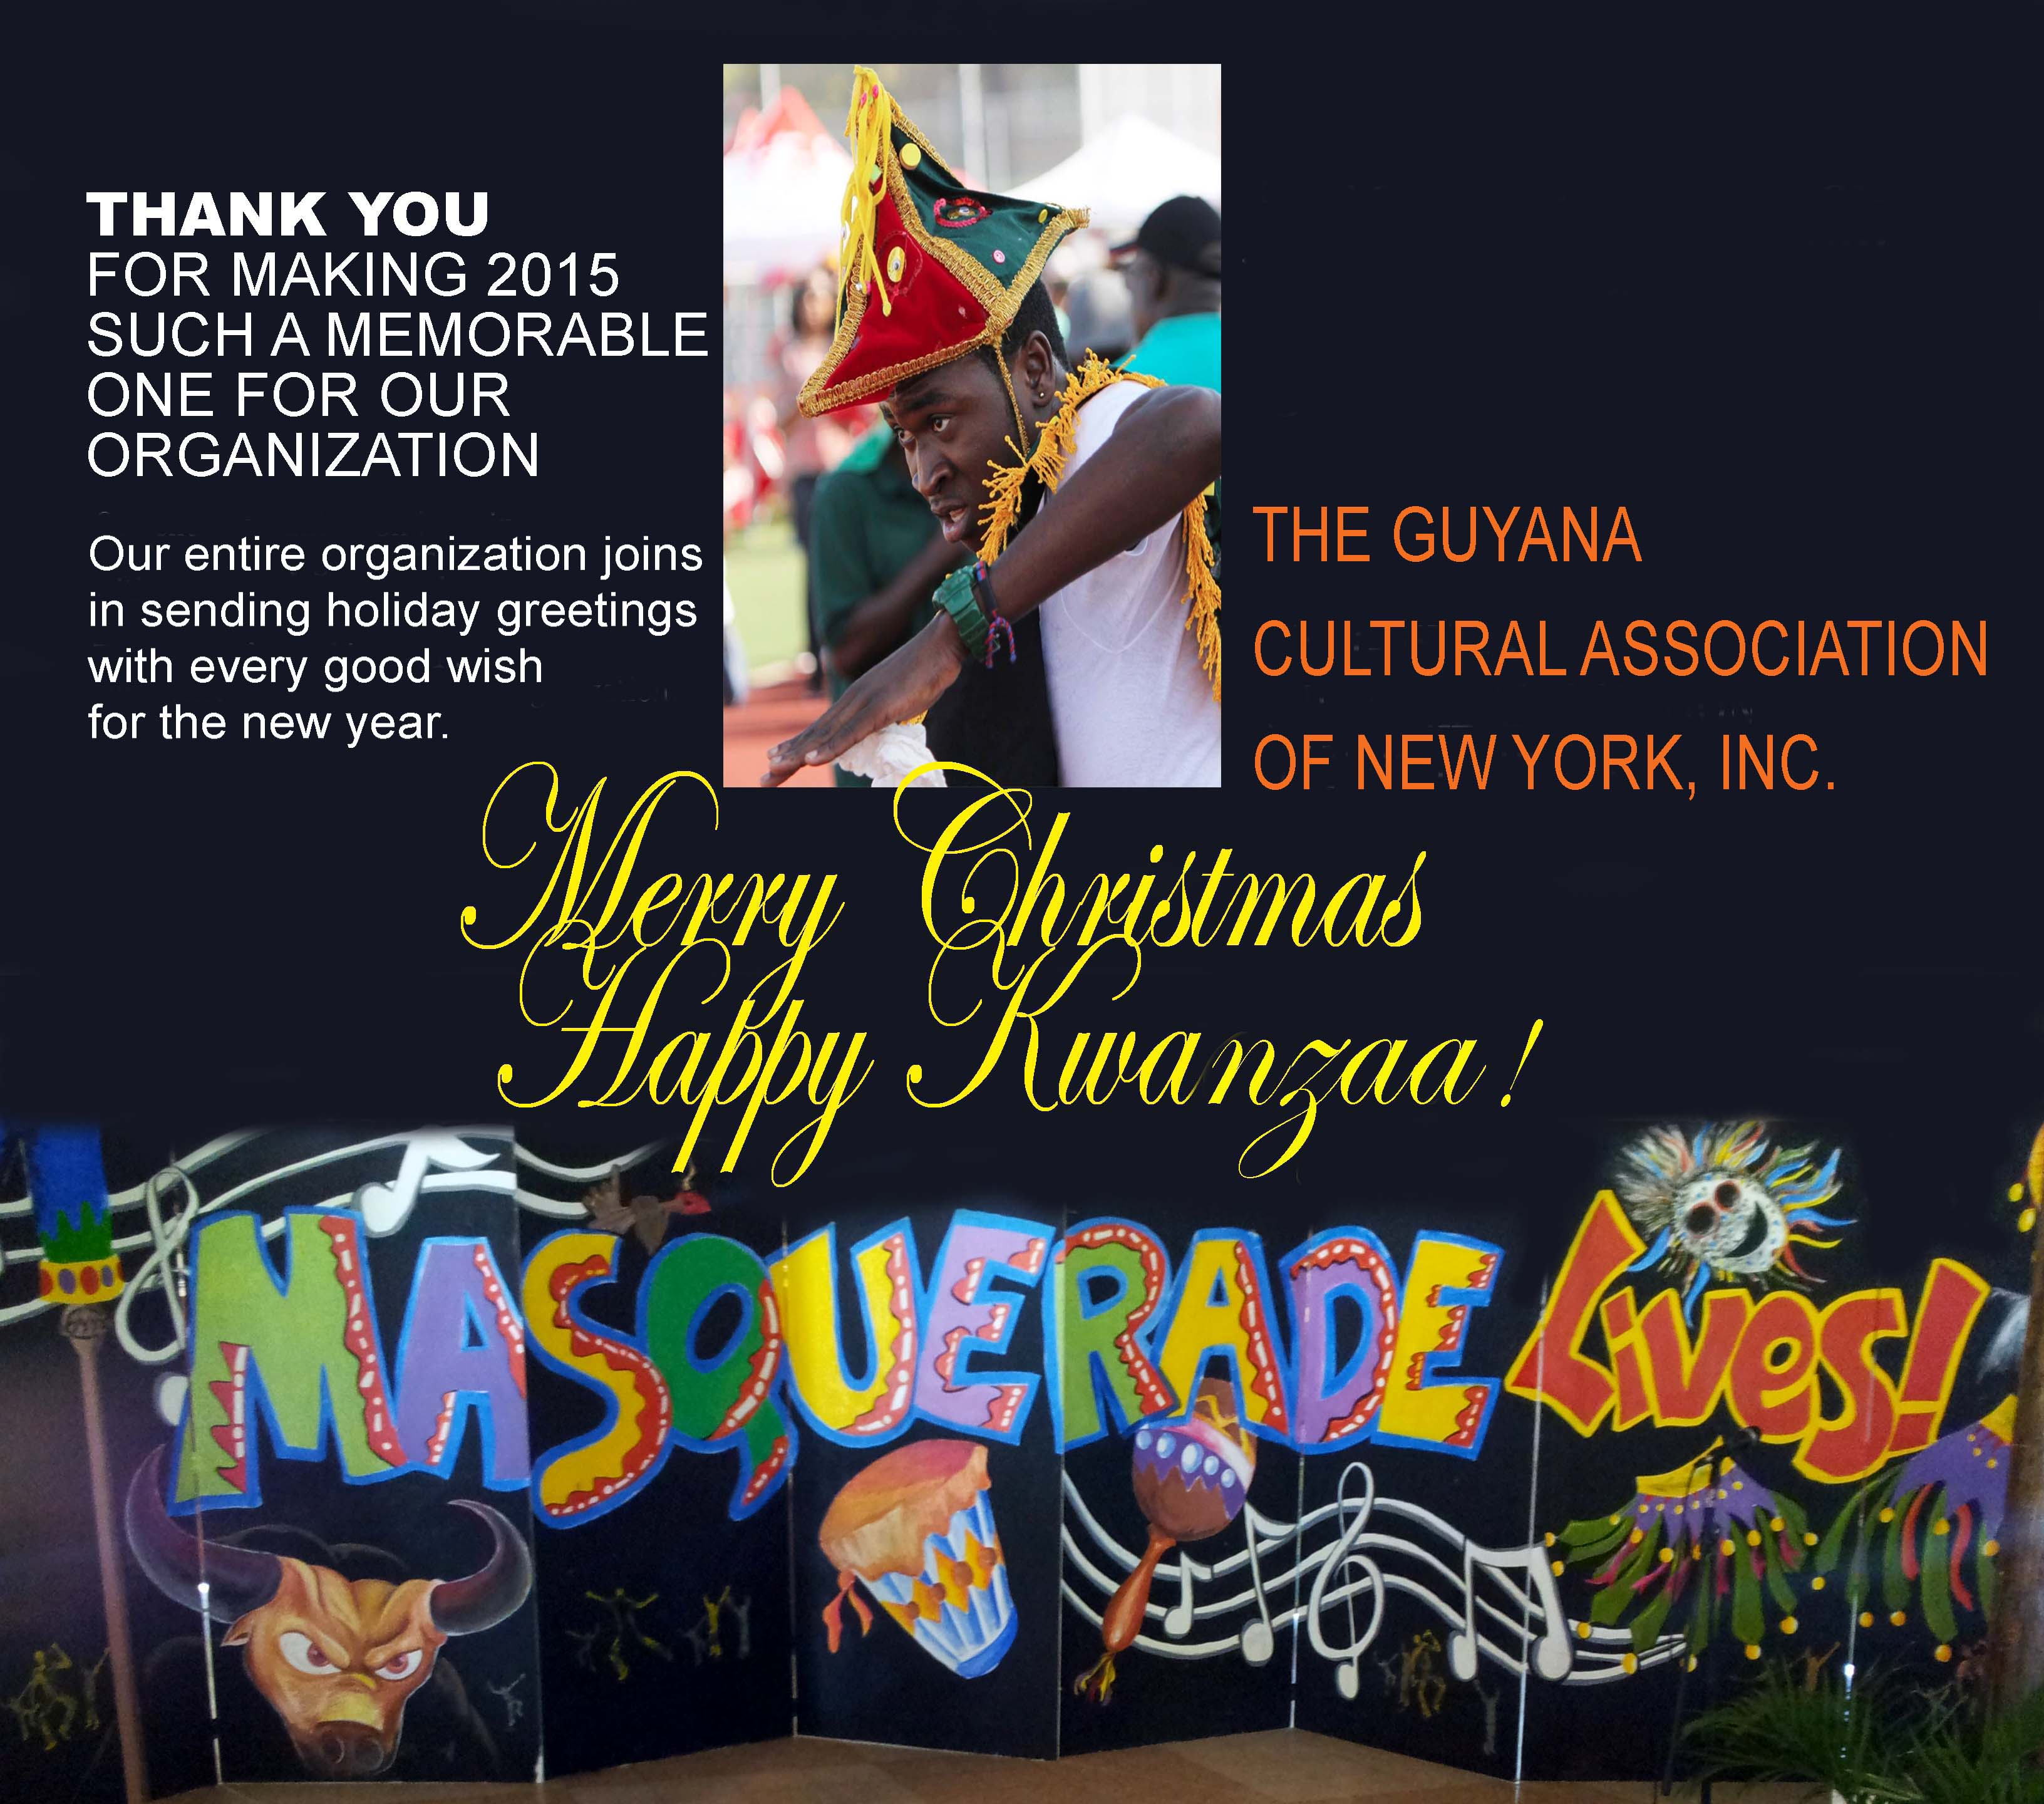 Greetings from the guyana cultural association of new york 2015 of new york 2015 gca christmas greetings fin kristyandbryce Images